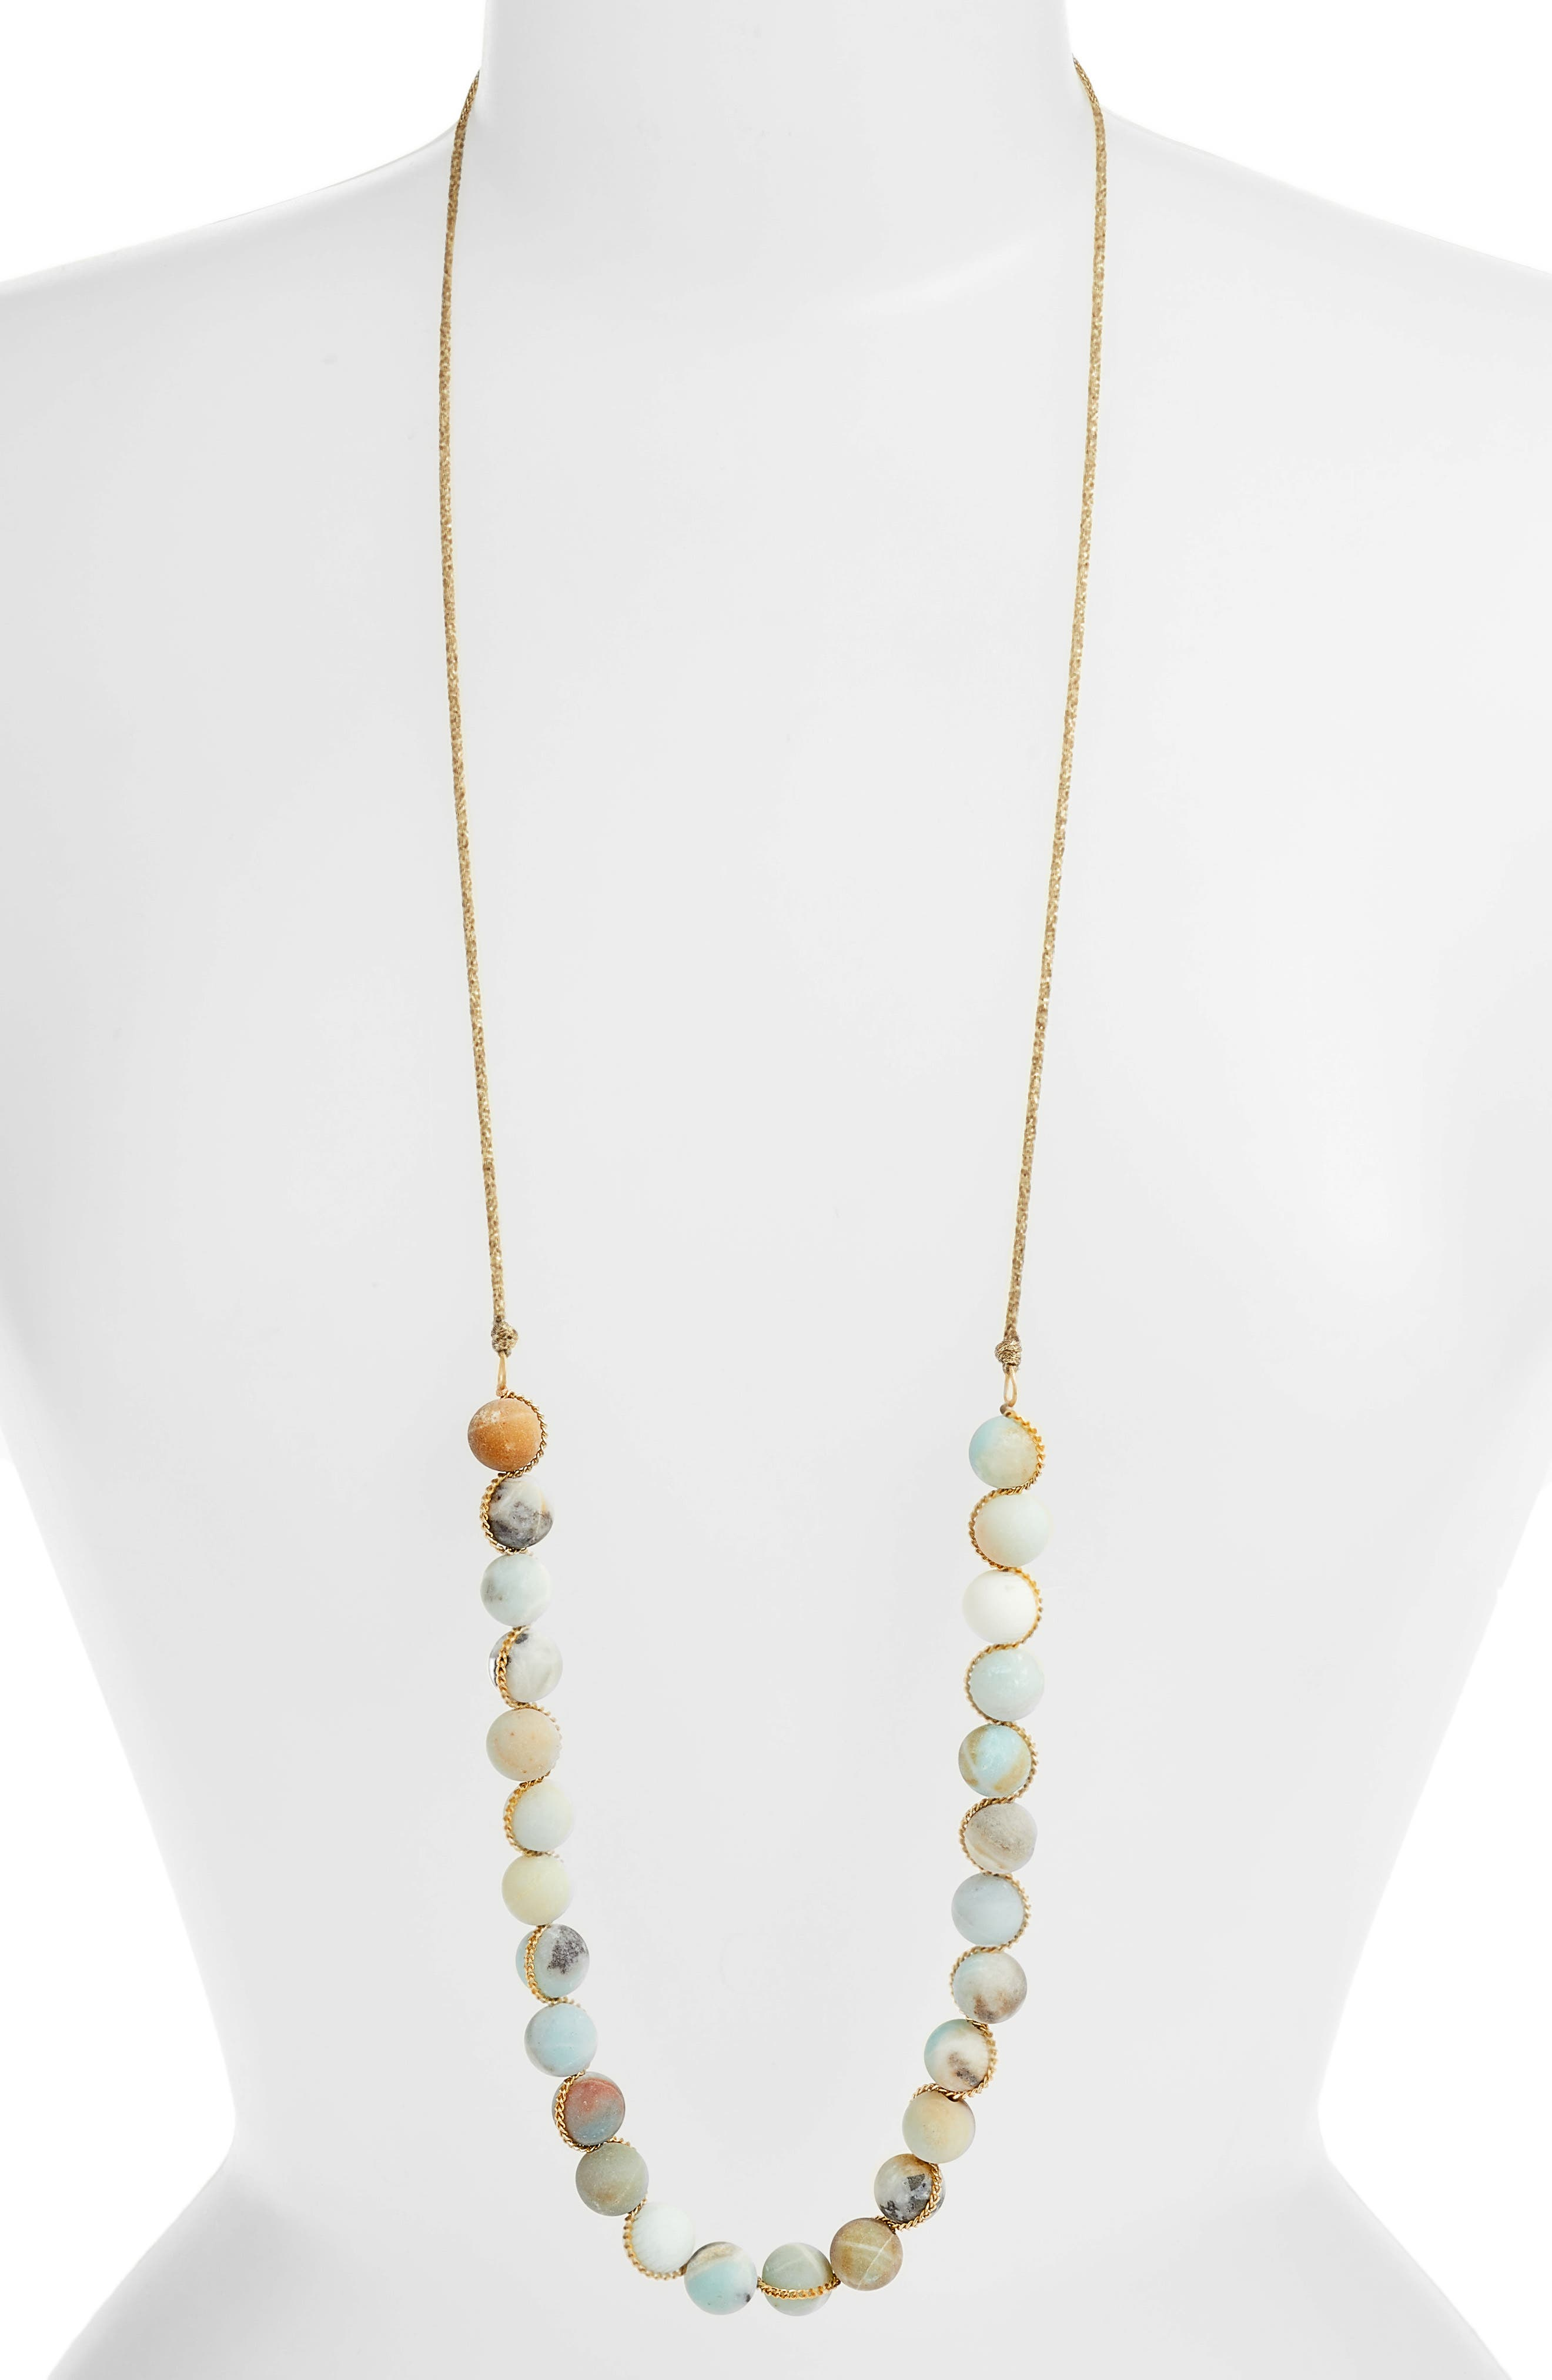 Matte Multicolor Amazonite Adjustable Necklace,                             Alternate thumbnail 2, color,                             MATTE MULTI